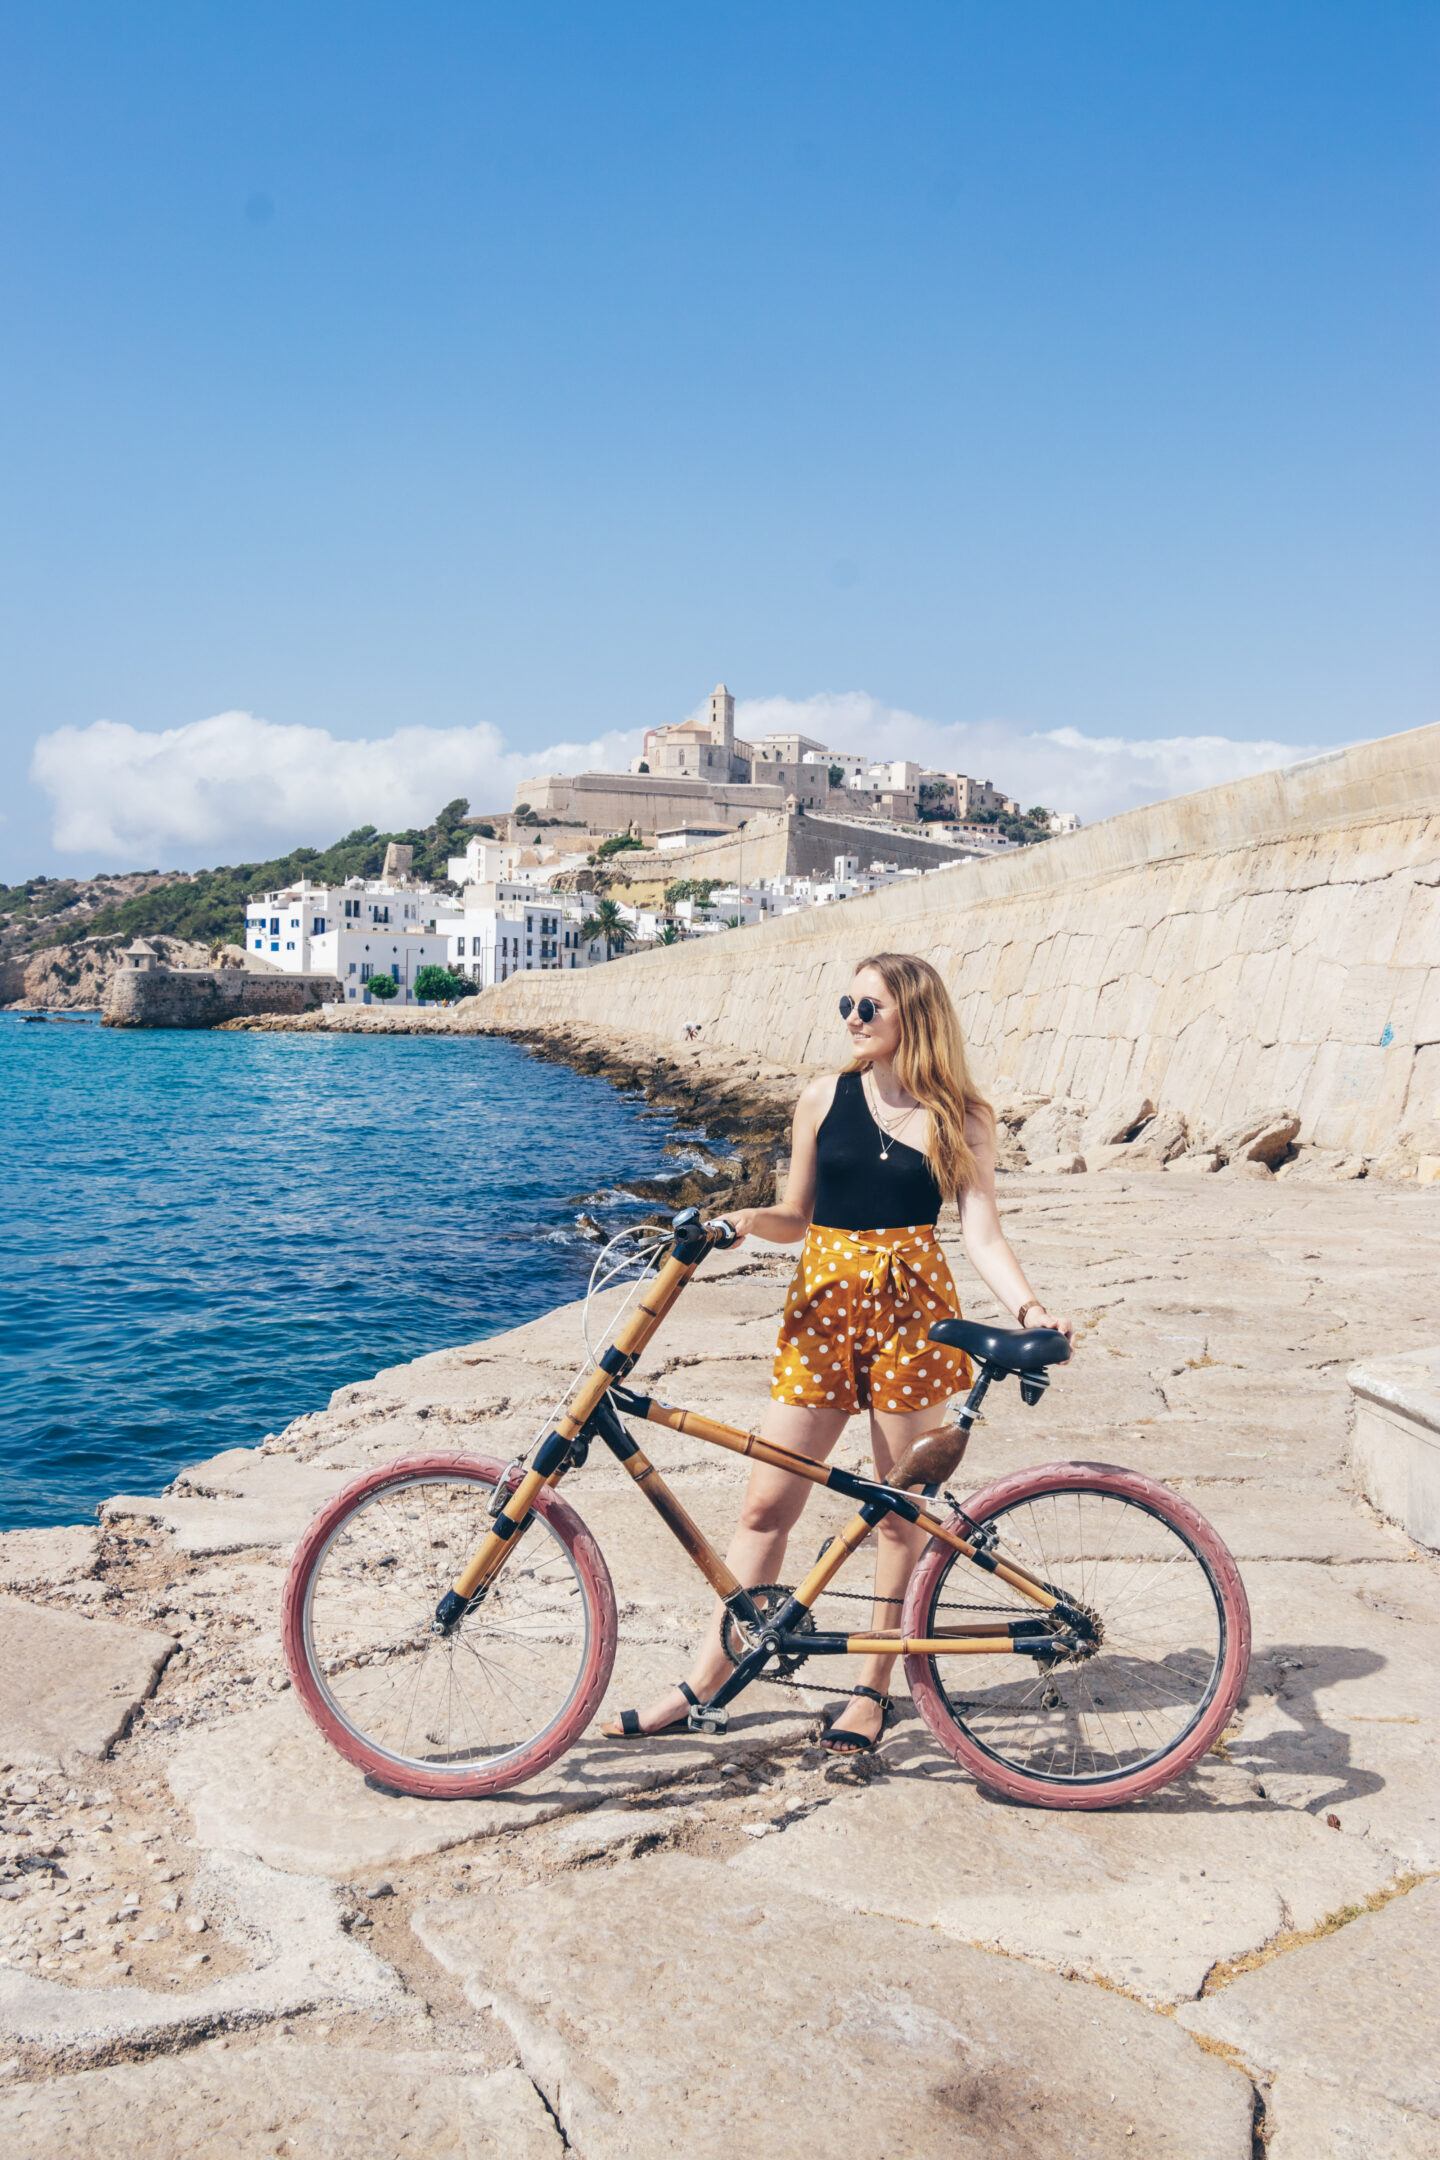 Explore the history of Ibiza by bicycle